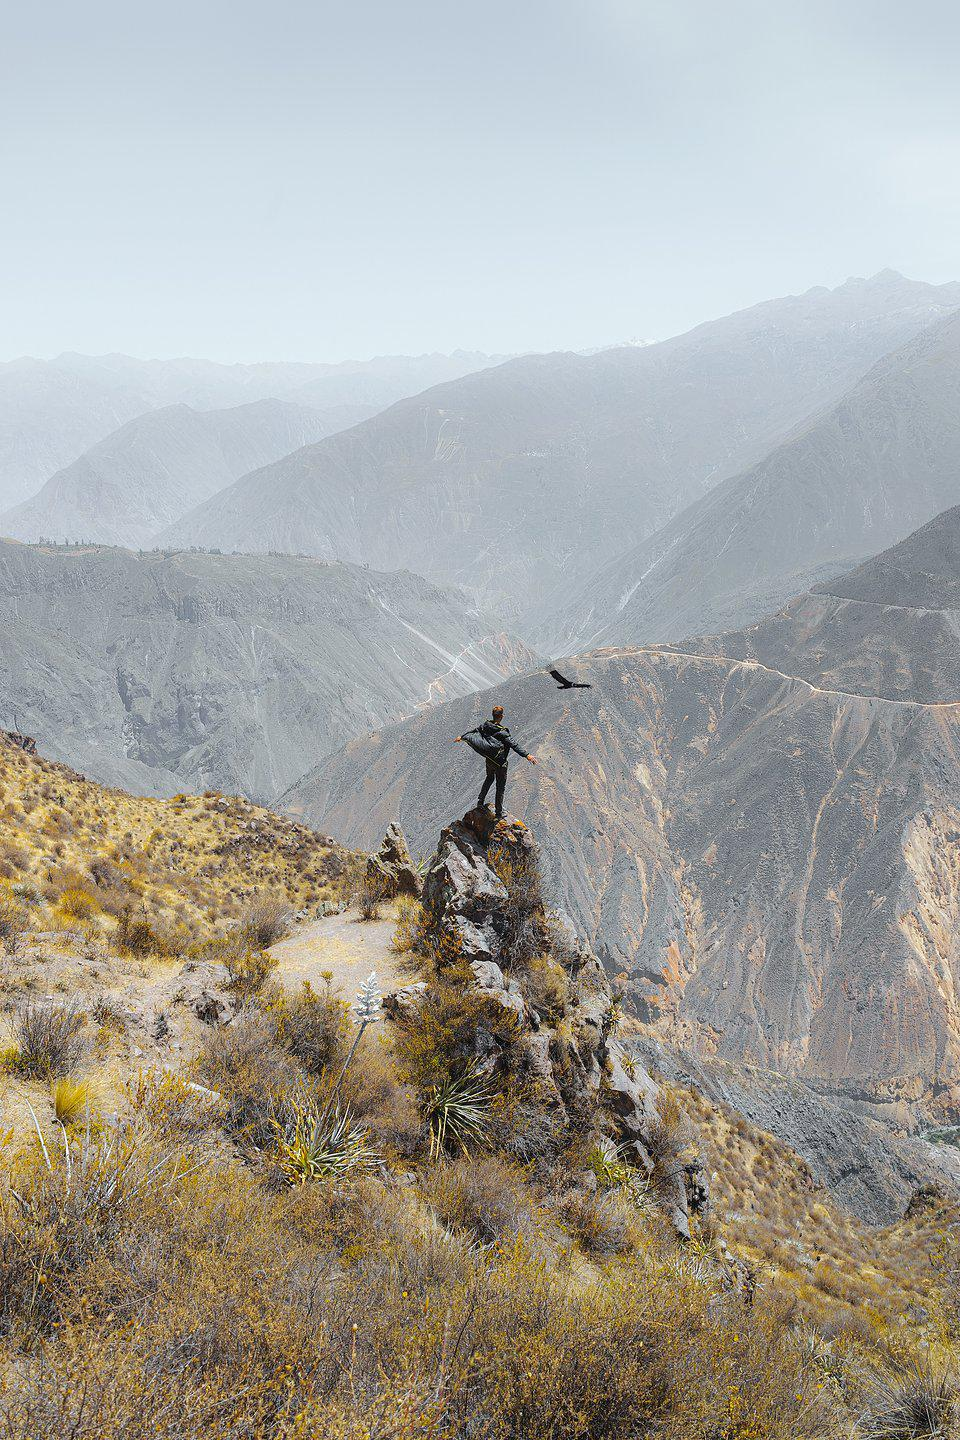 A person high in the Andes Mountains in Colca Canyon, Peru